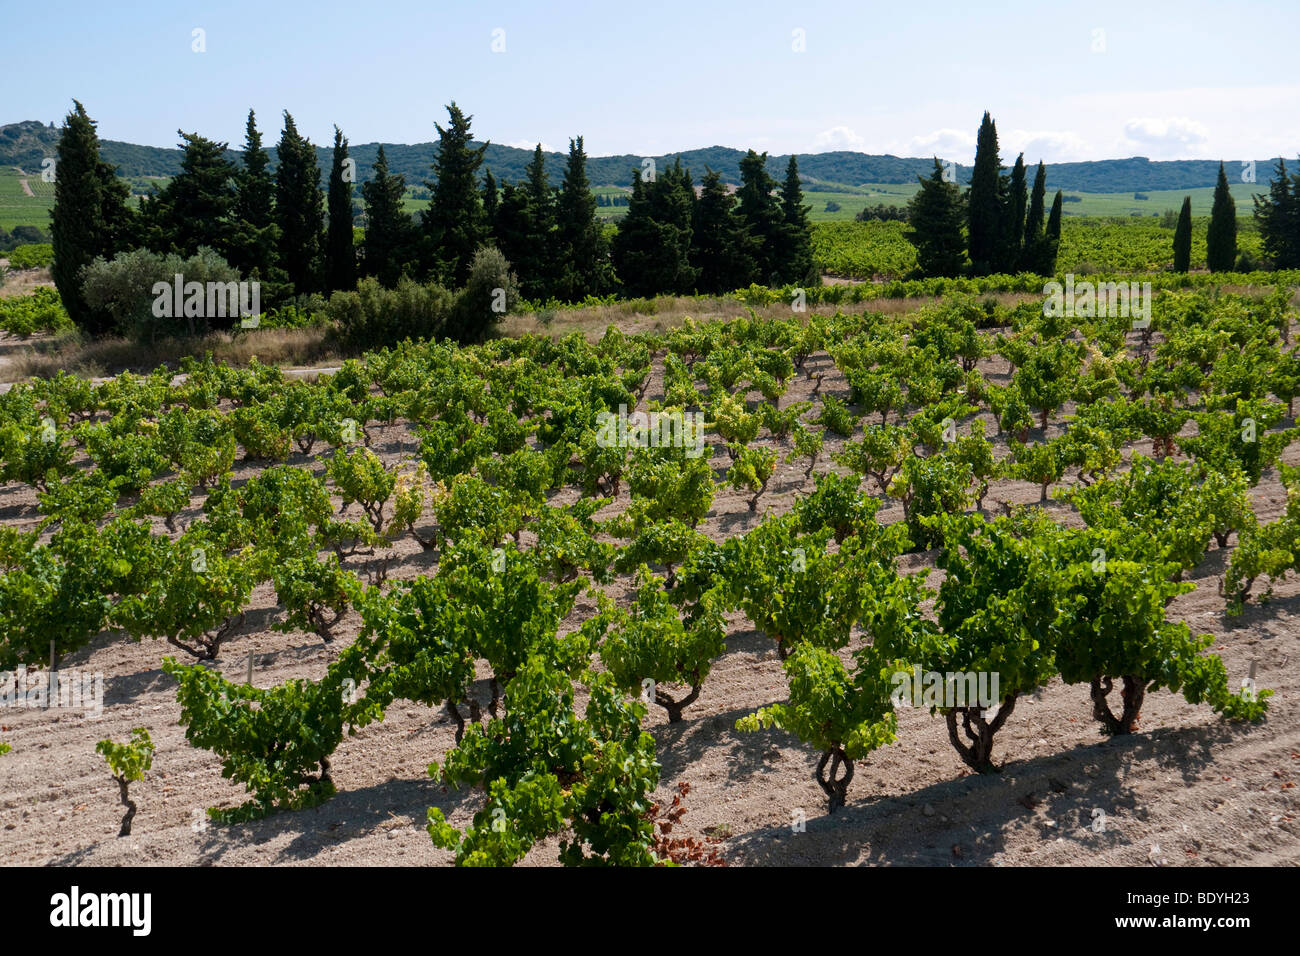 A vineyard in the wine growing area of Tavel. - Stock Image